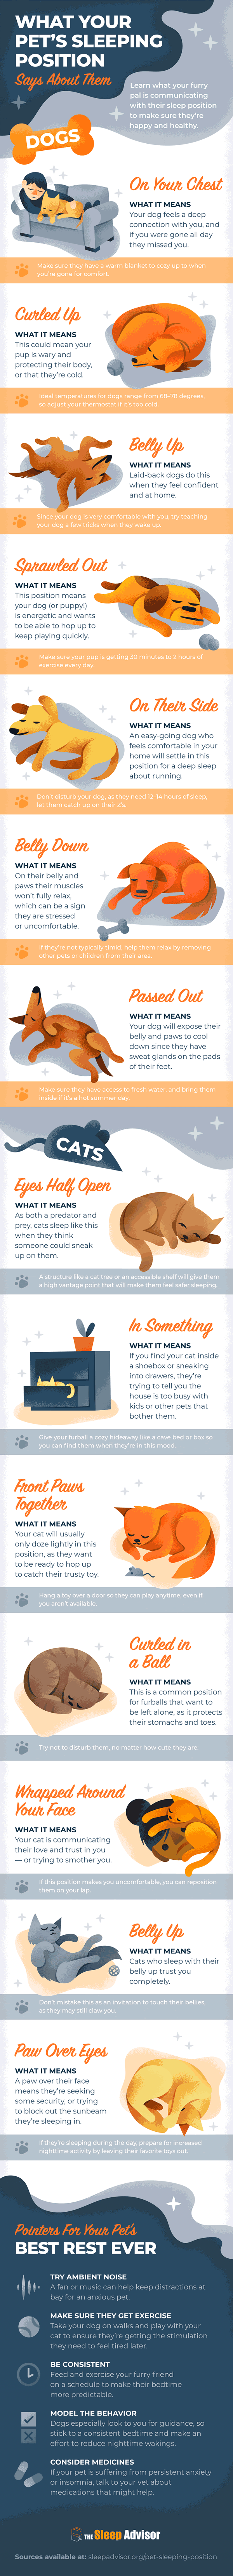 What your pet's sleeping position means infographic